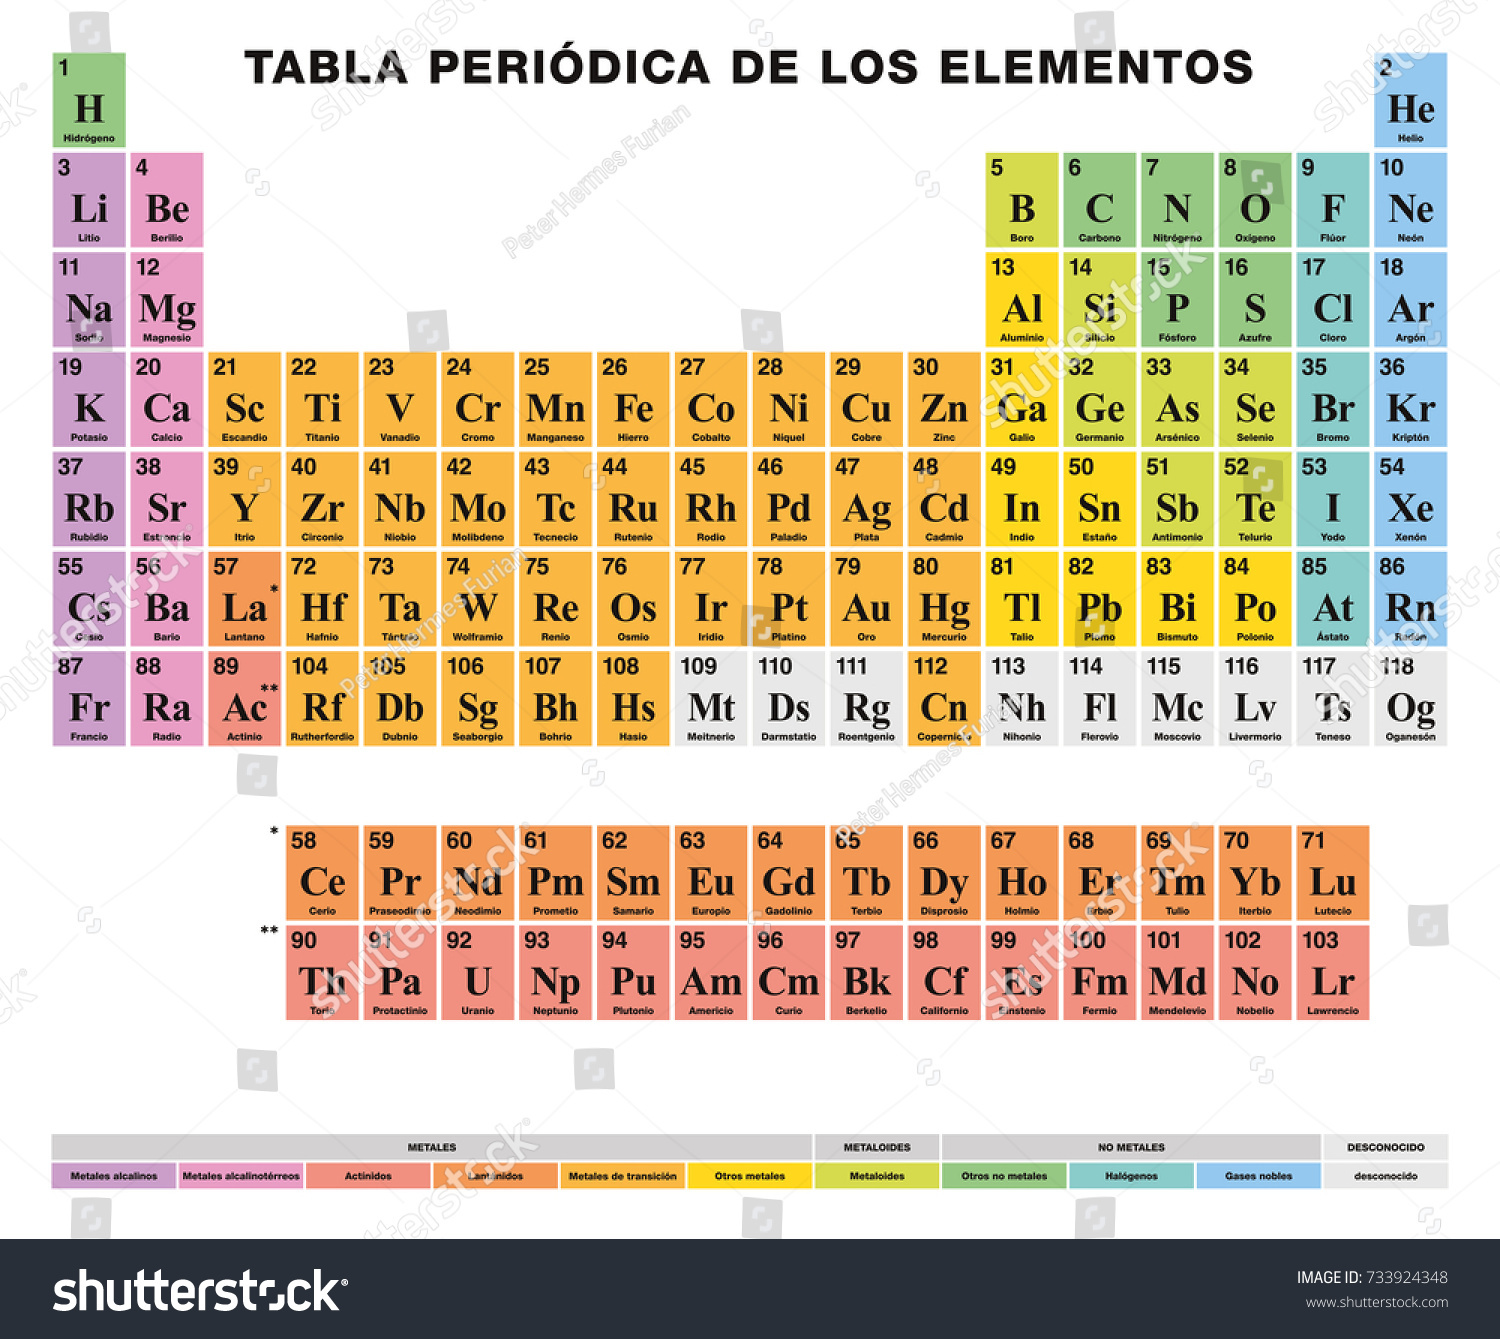 Periodic table elements spanish labeling tabular stock vector periodic table of the elements spanish labeling tabular arrangement of 118 chemical elements gamestrikefo Images